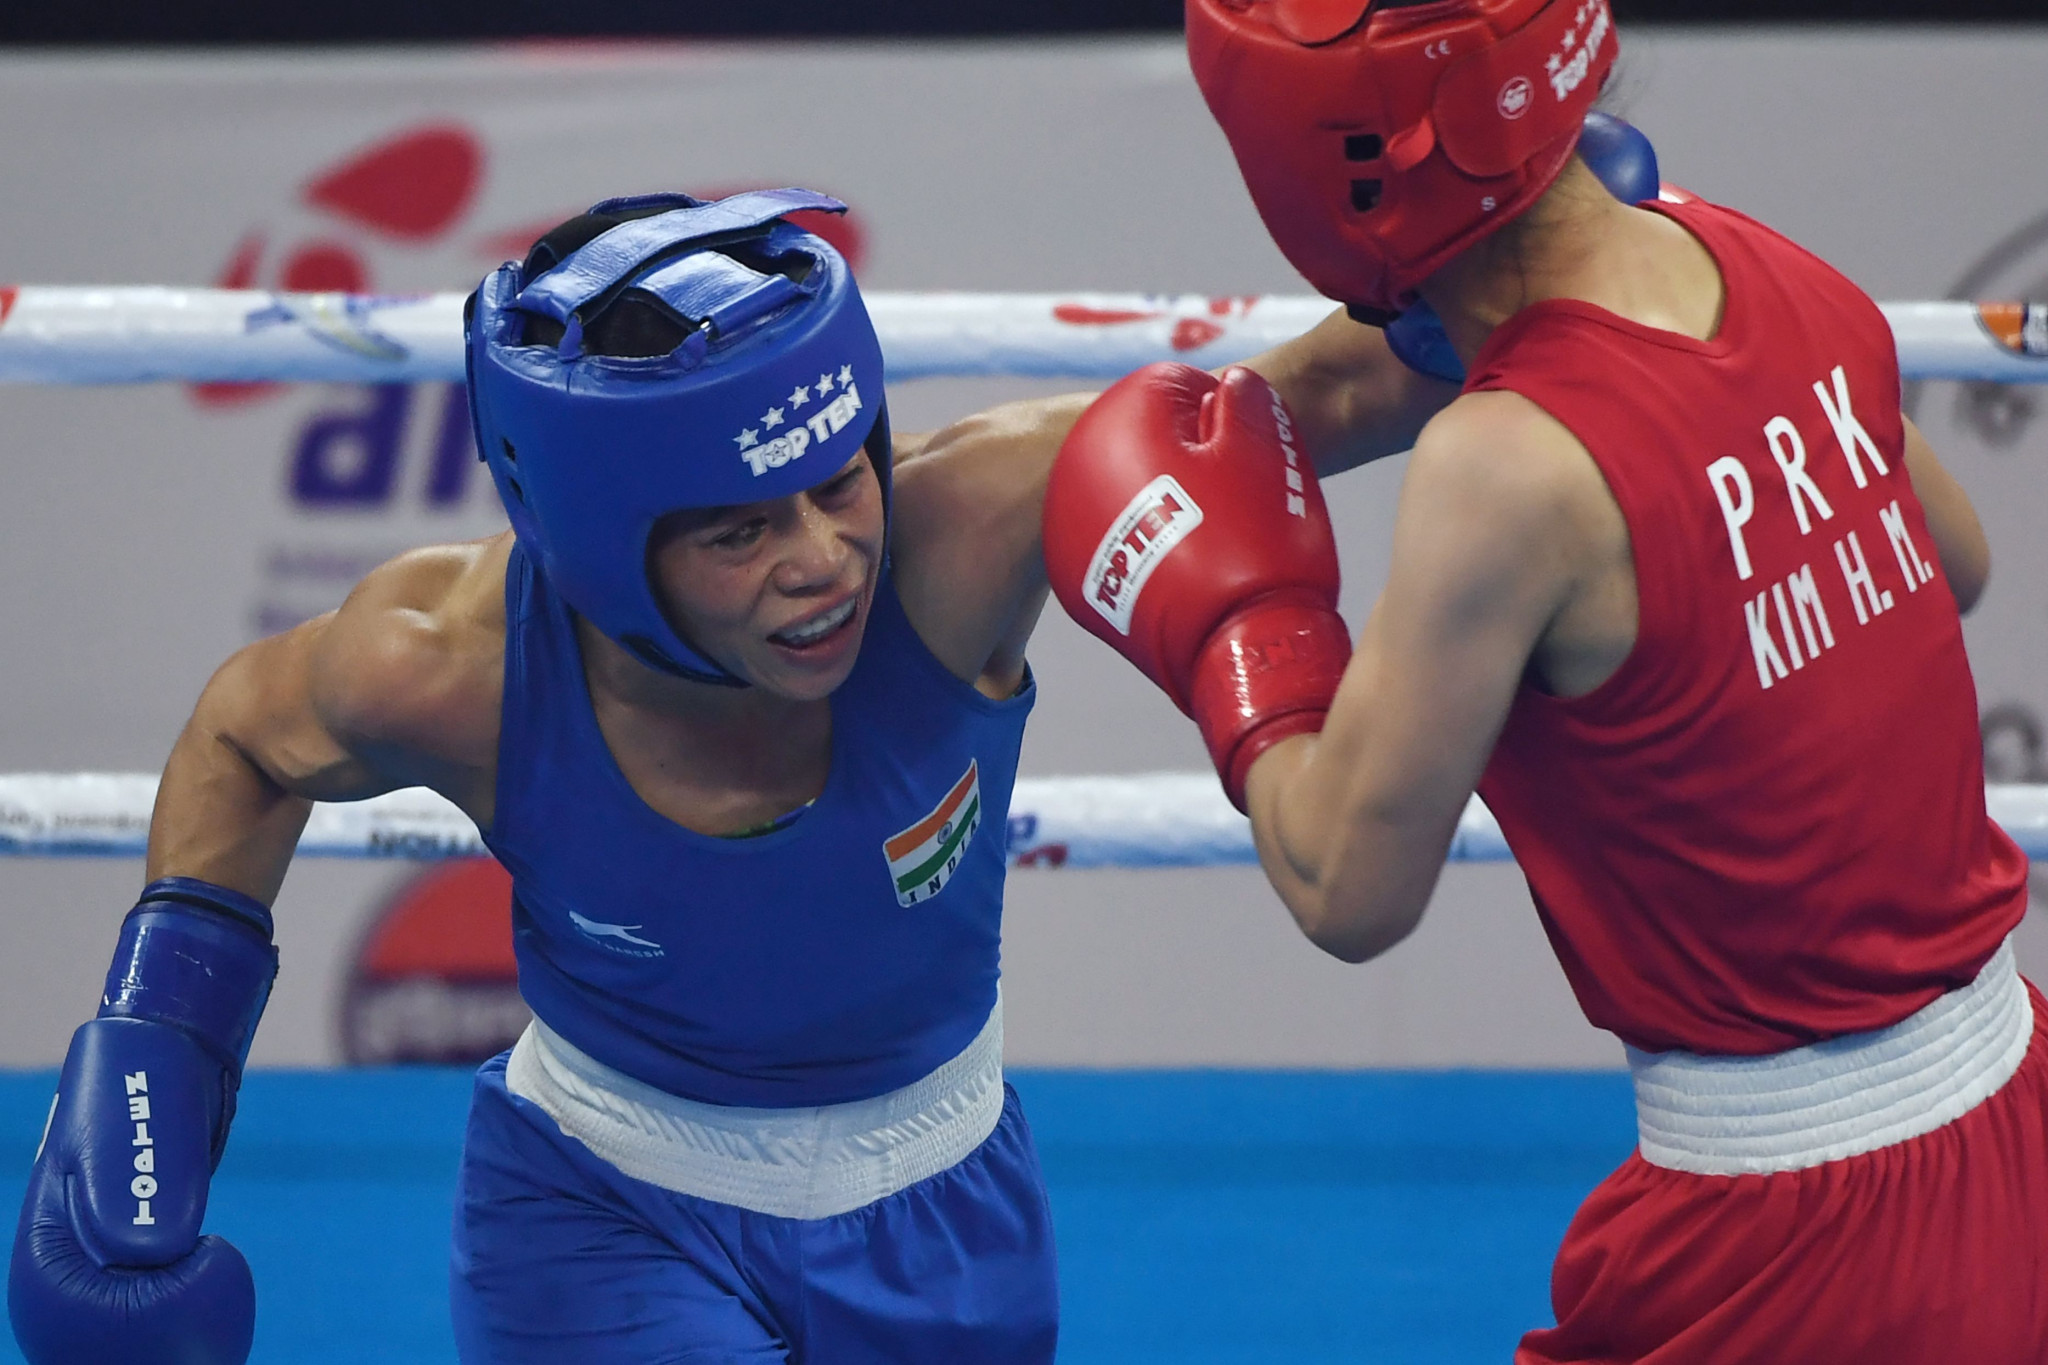 India to hold trials to choose team for Olympic boxing qualifier